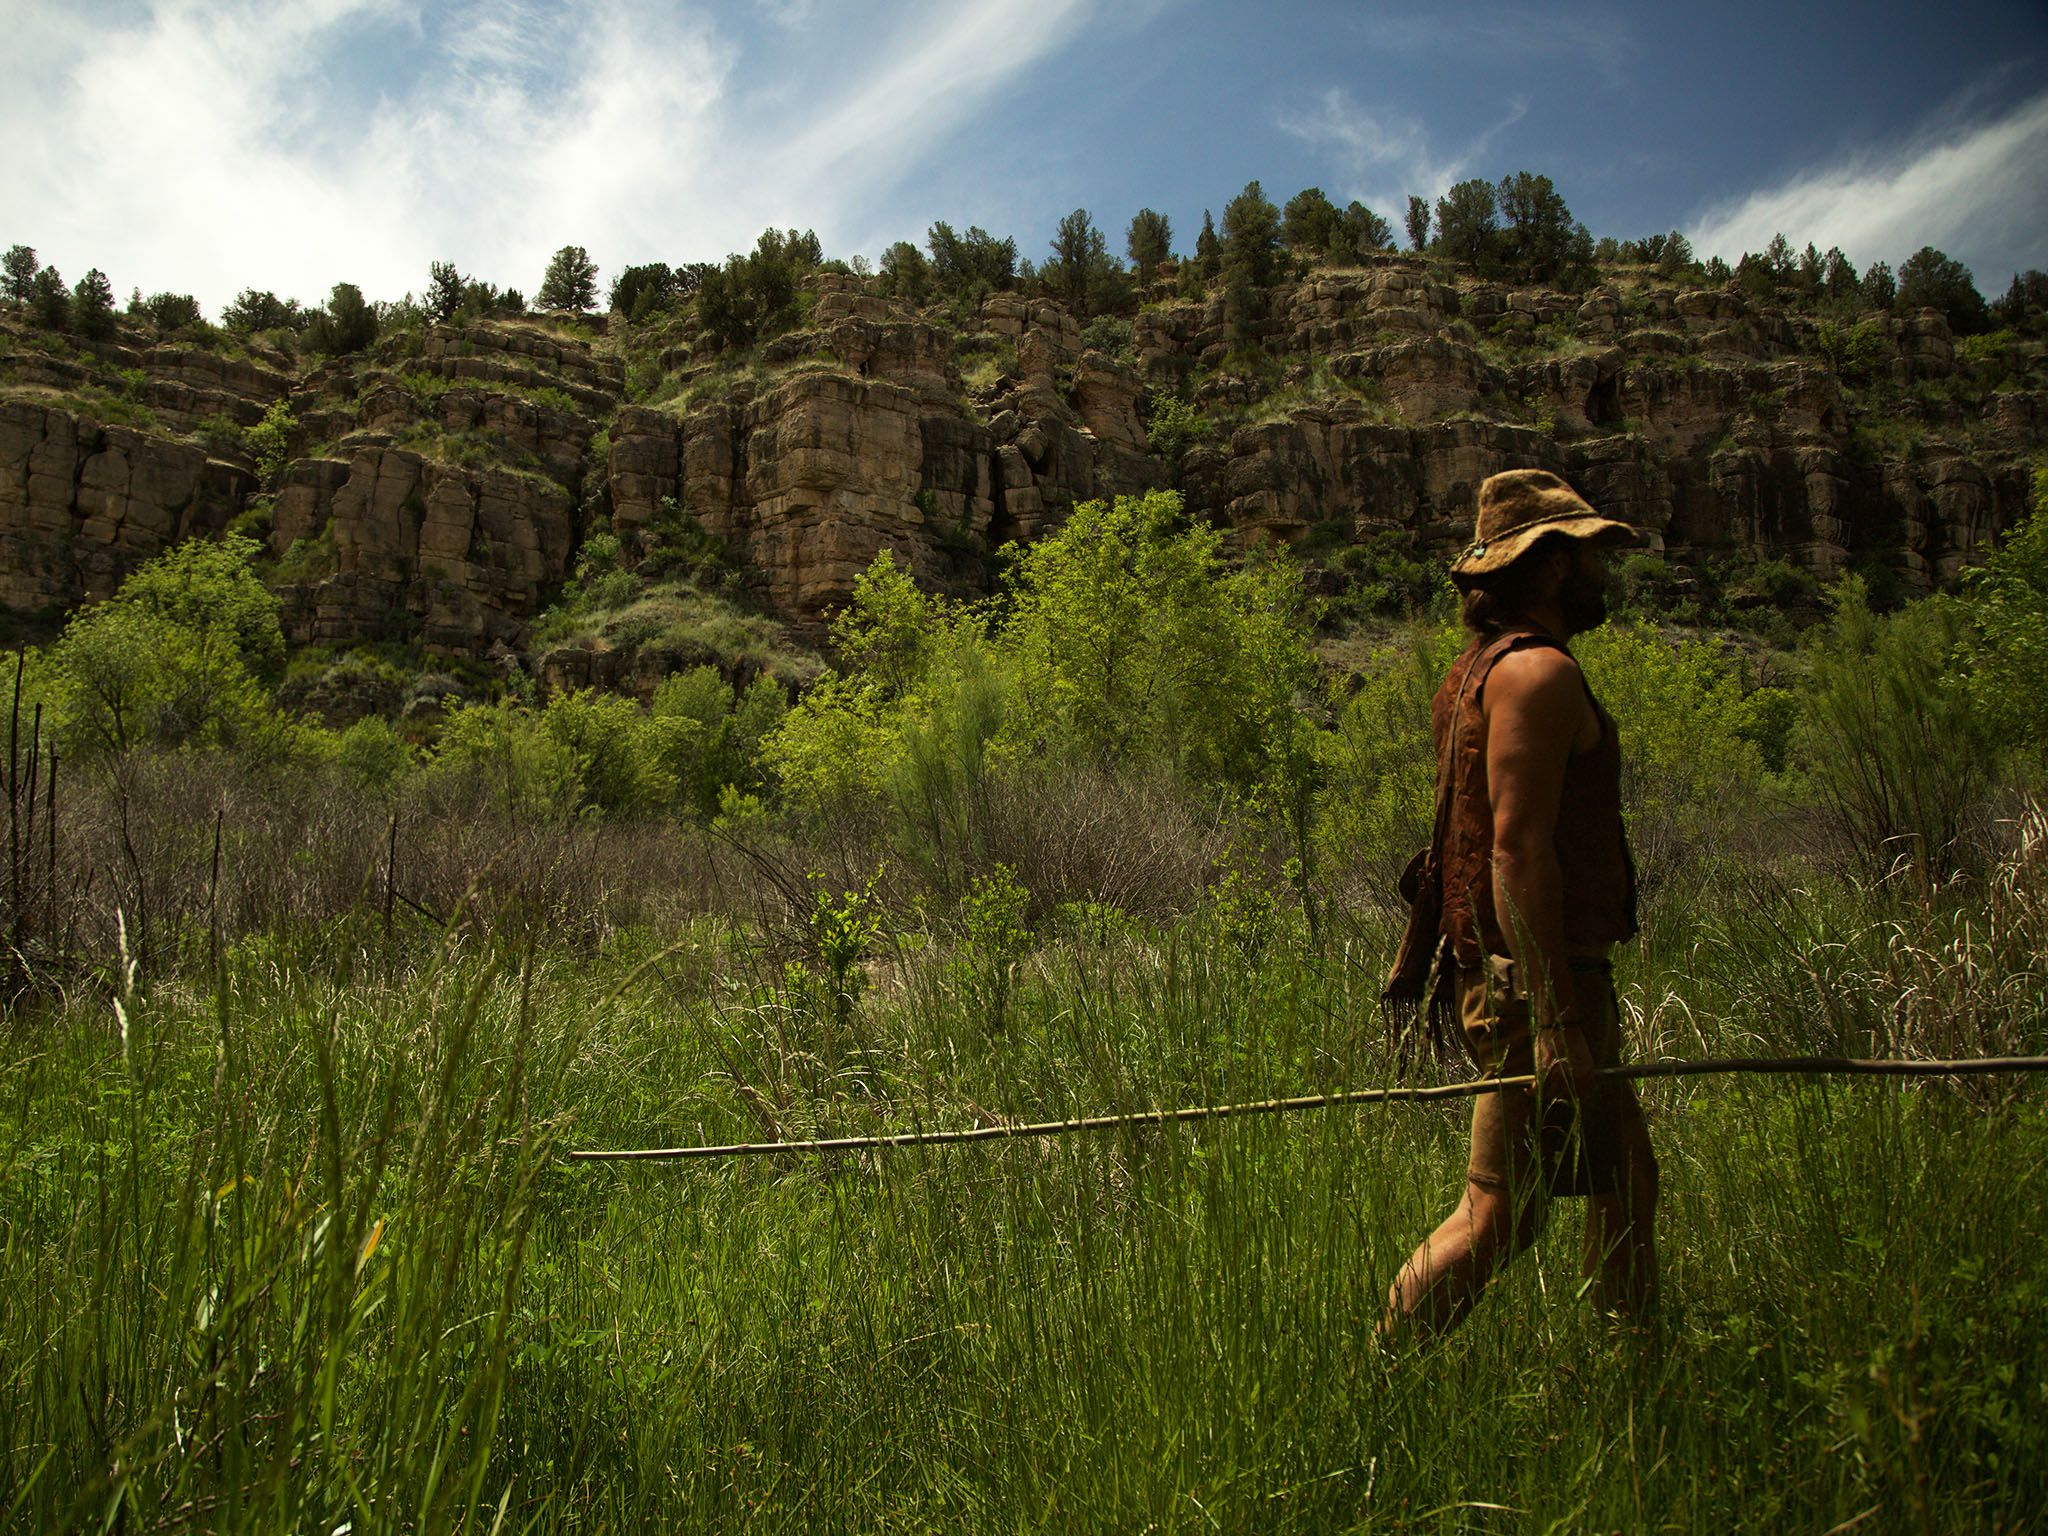 Ash Fork, AZ: Tobias WS walking through foliage. This image is from Live Free or Die. [Photo of the day - 十二月 2015]